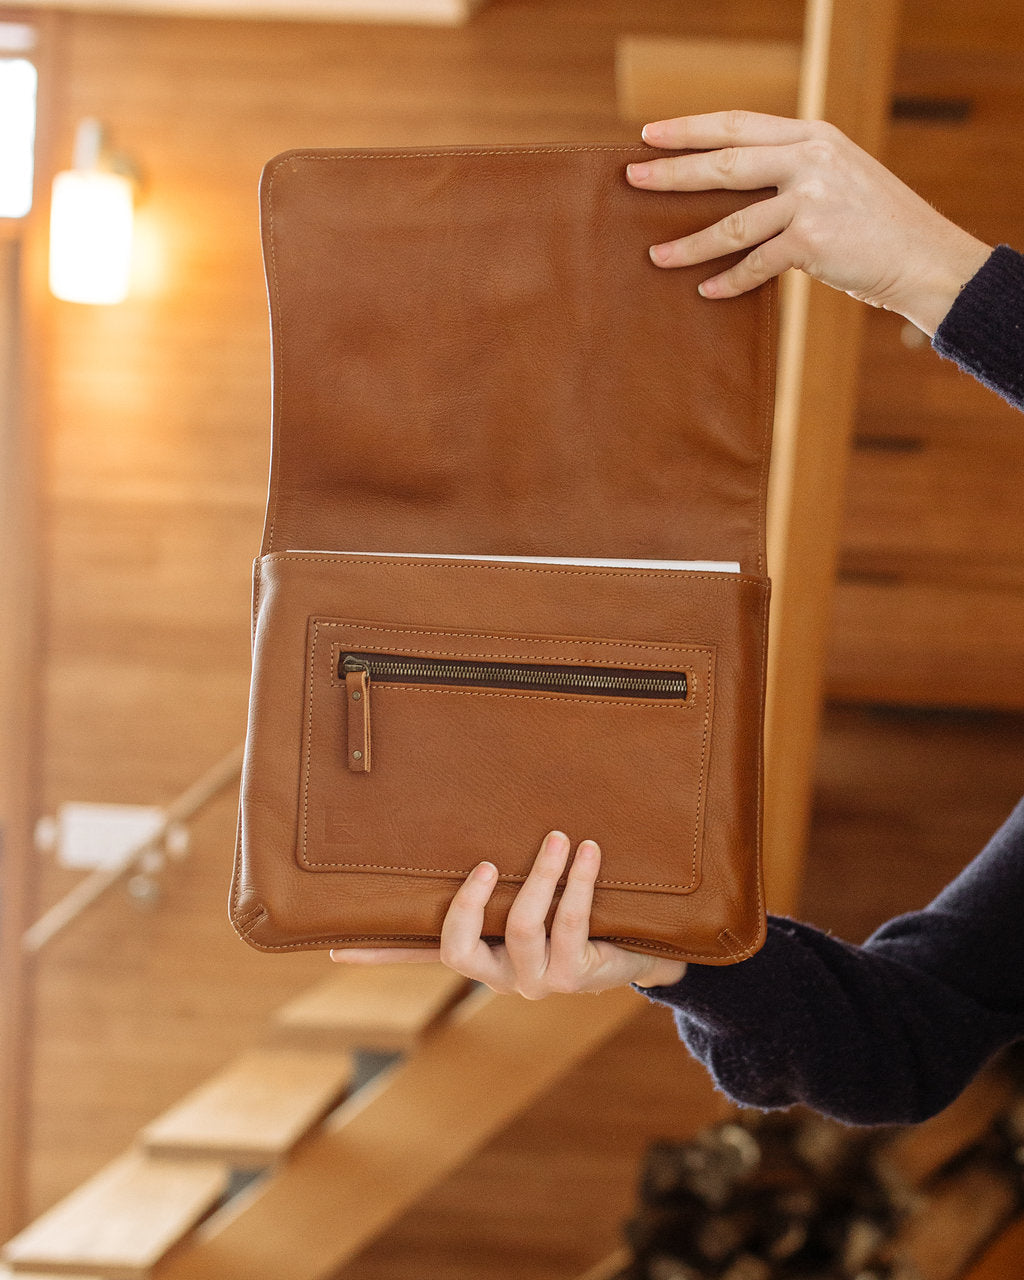 Shop Leather Portfolio Cases for great gifts